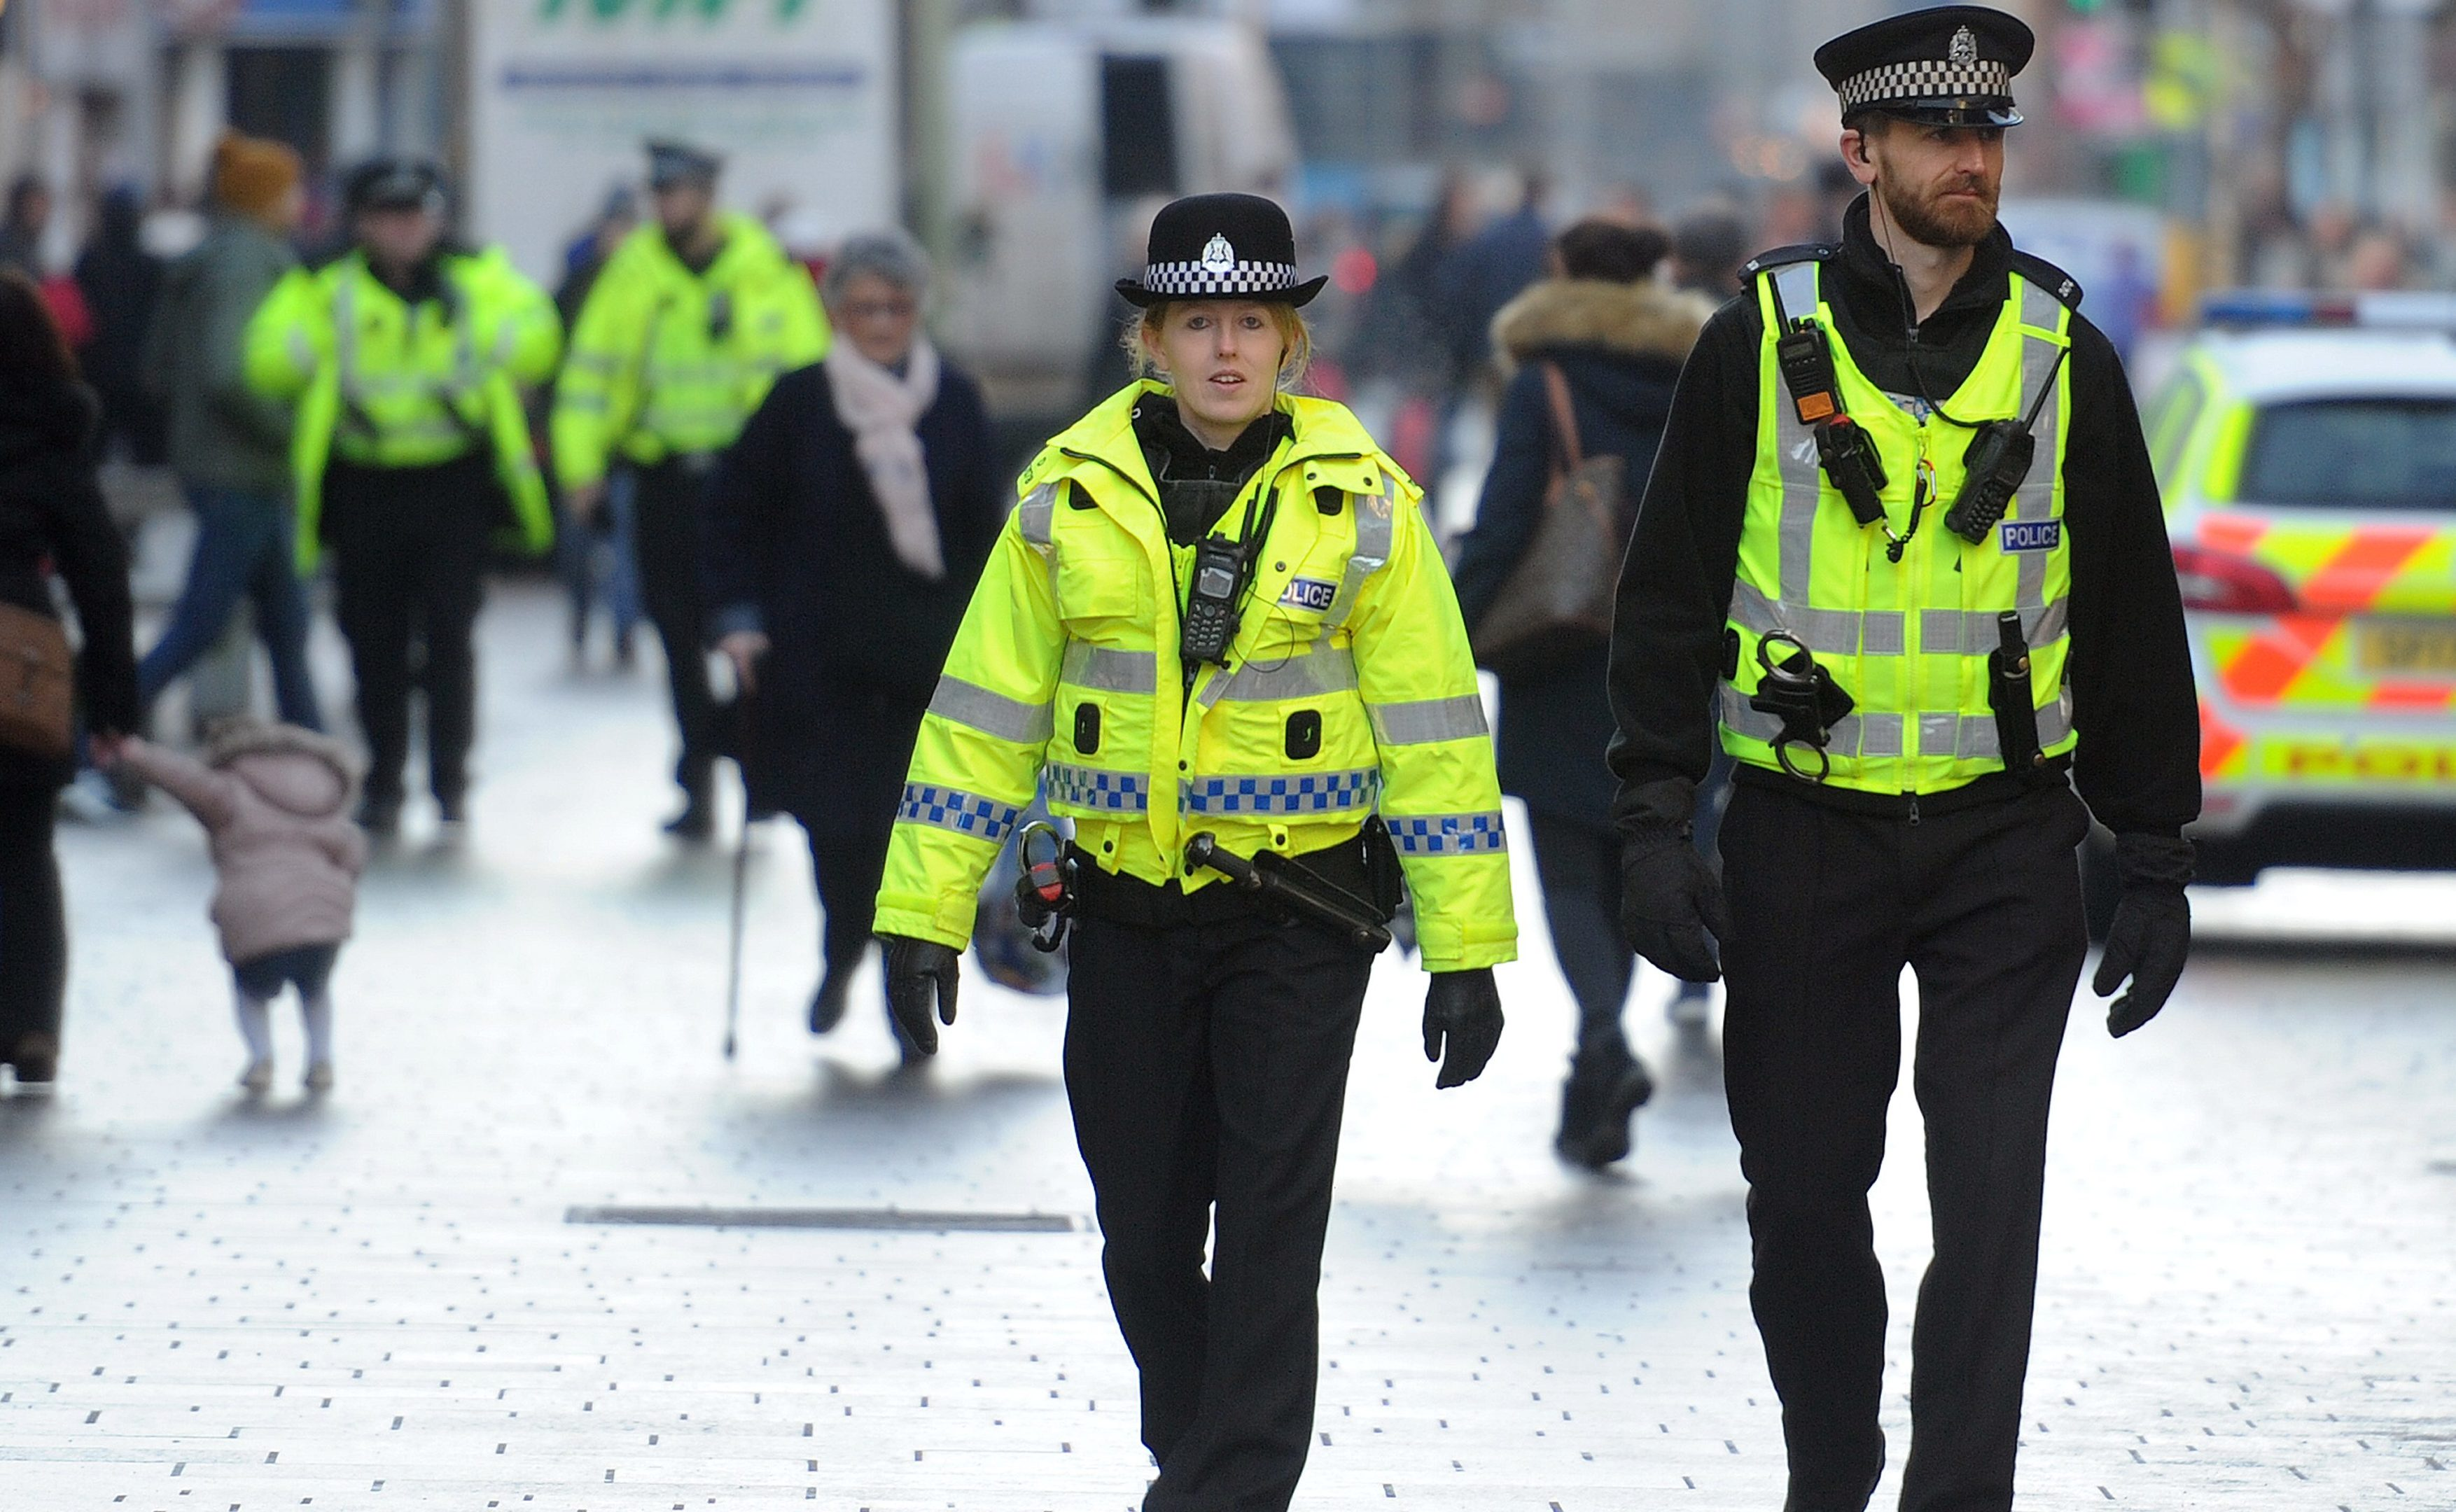 Police out on patrol in Perth city centre.